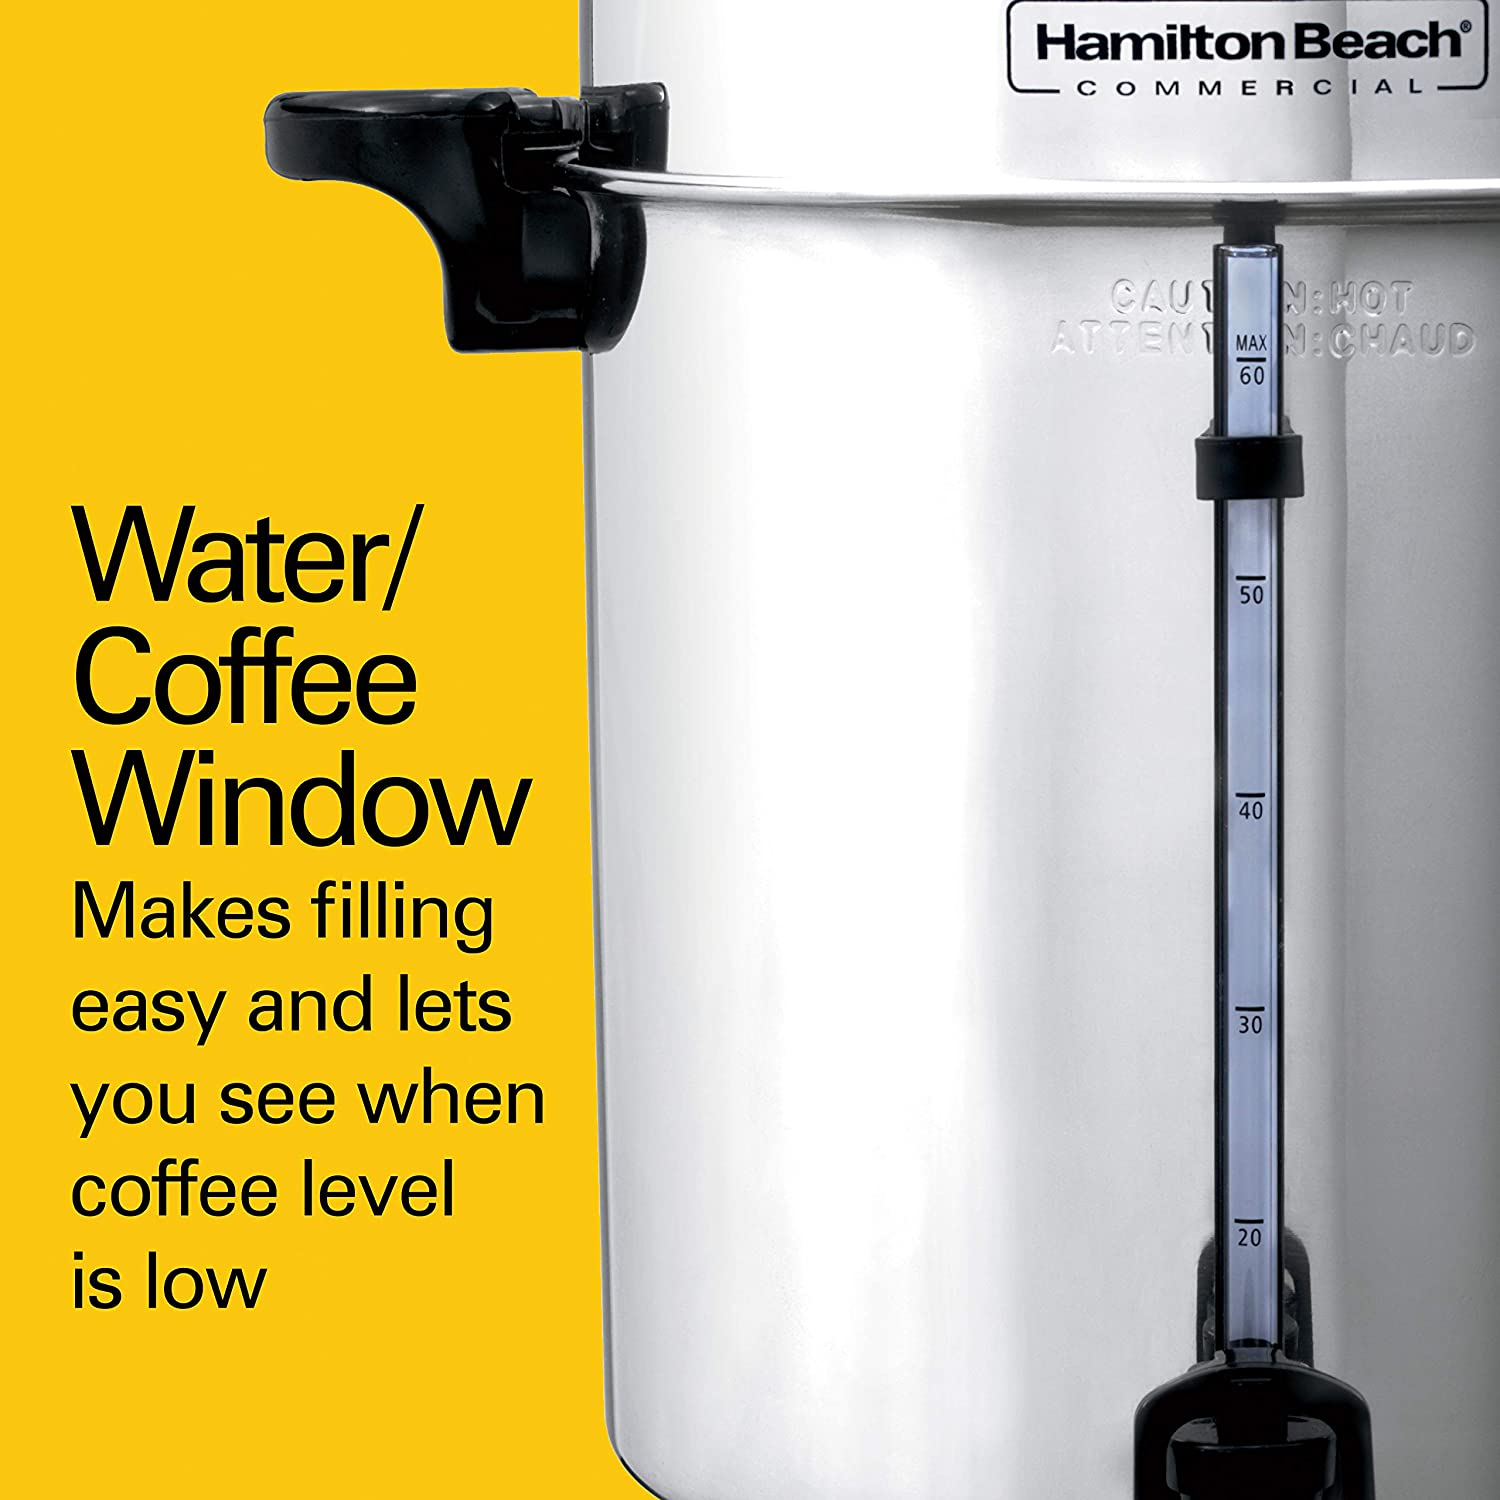 Hamilton Beach Commercial Stainless Steel Coffee Urn 60 Cup Capacity D50065 Coffee Urns Amazon Com